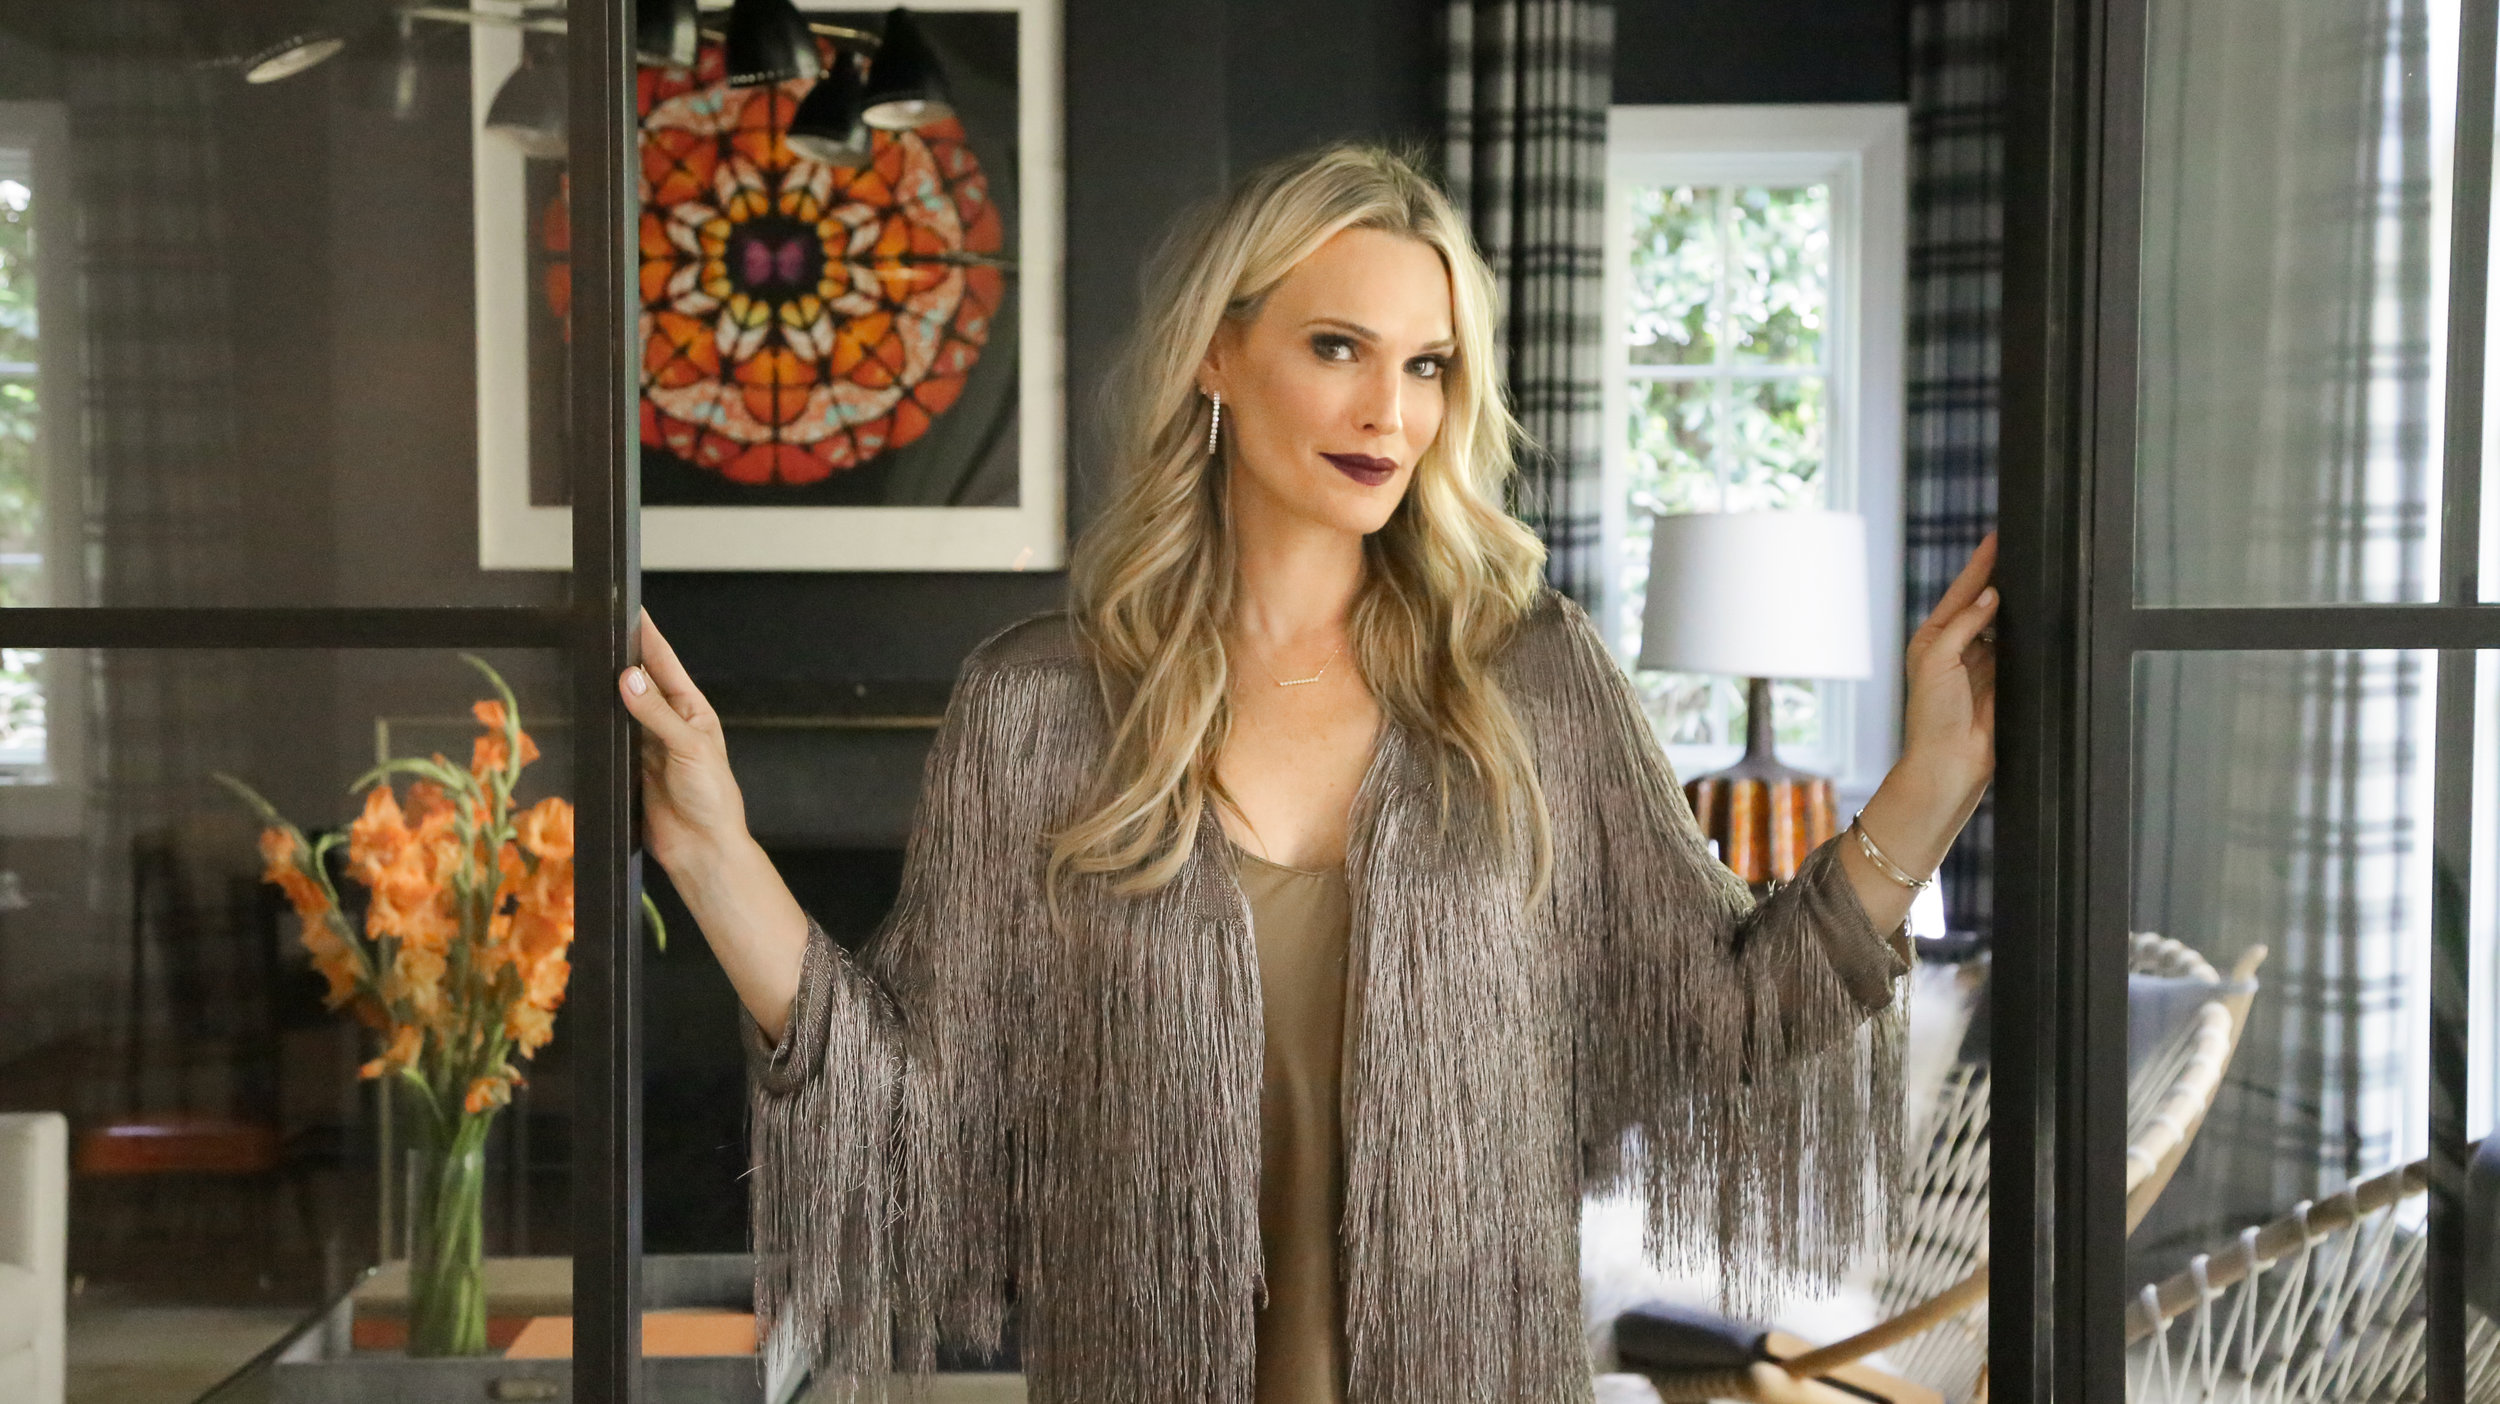 Molly Sims - Three Ways To Wear A Slip Dress For Every Occasion - photography by Erica Hampton